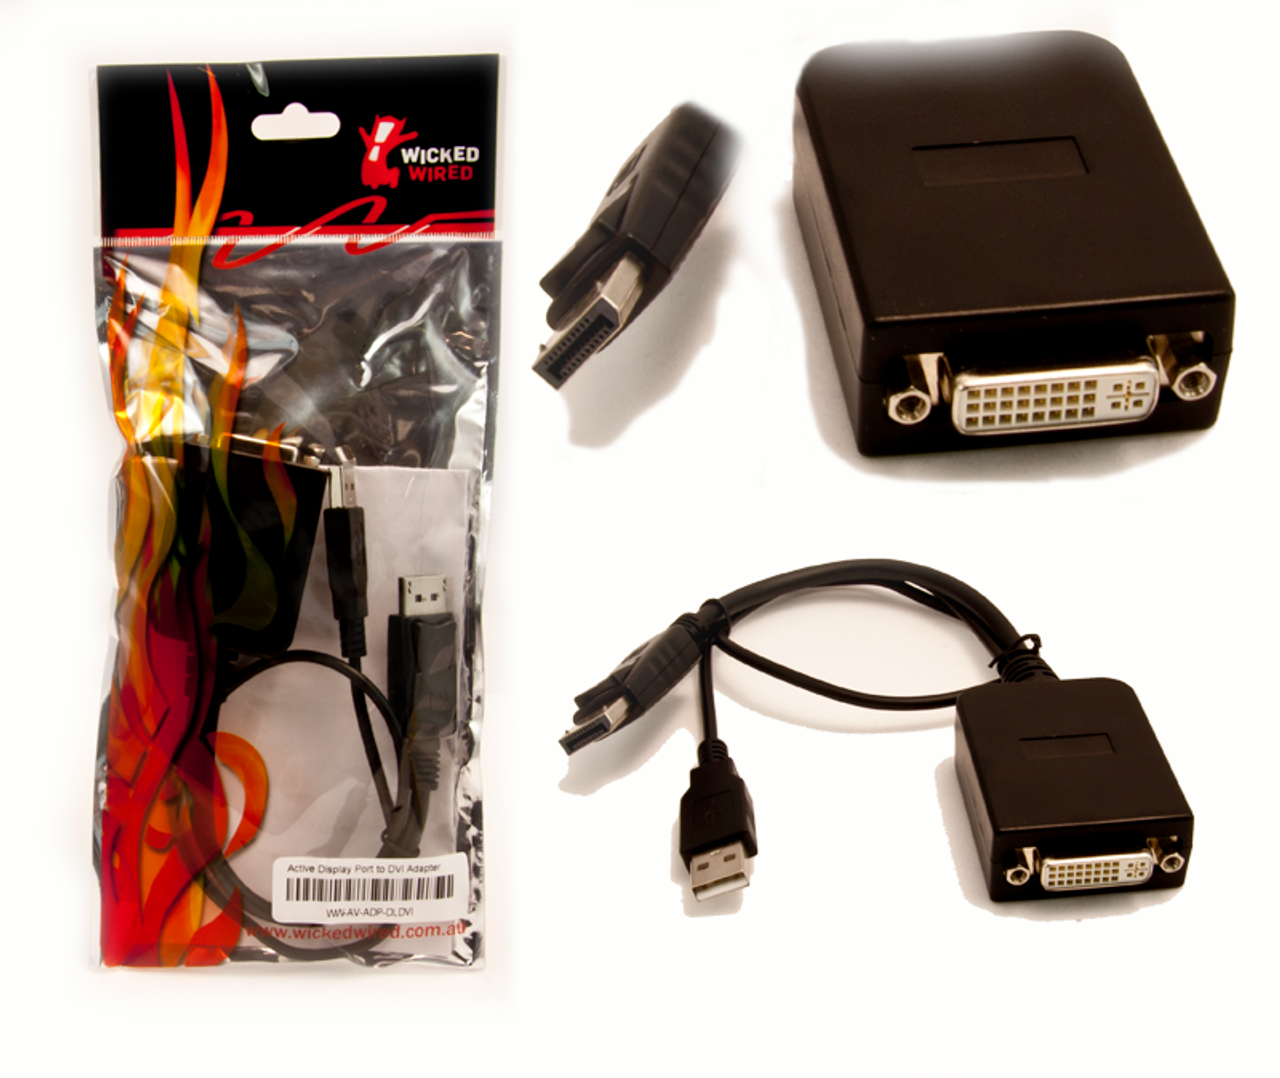 Product image for Adapter Active DisplayPort To DVI-D Adapter (200492 Parade chipset) | CX Computer Superstore